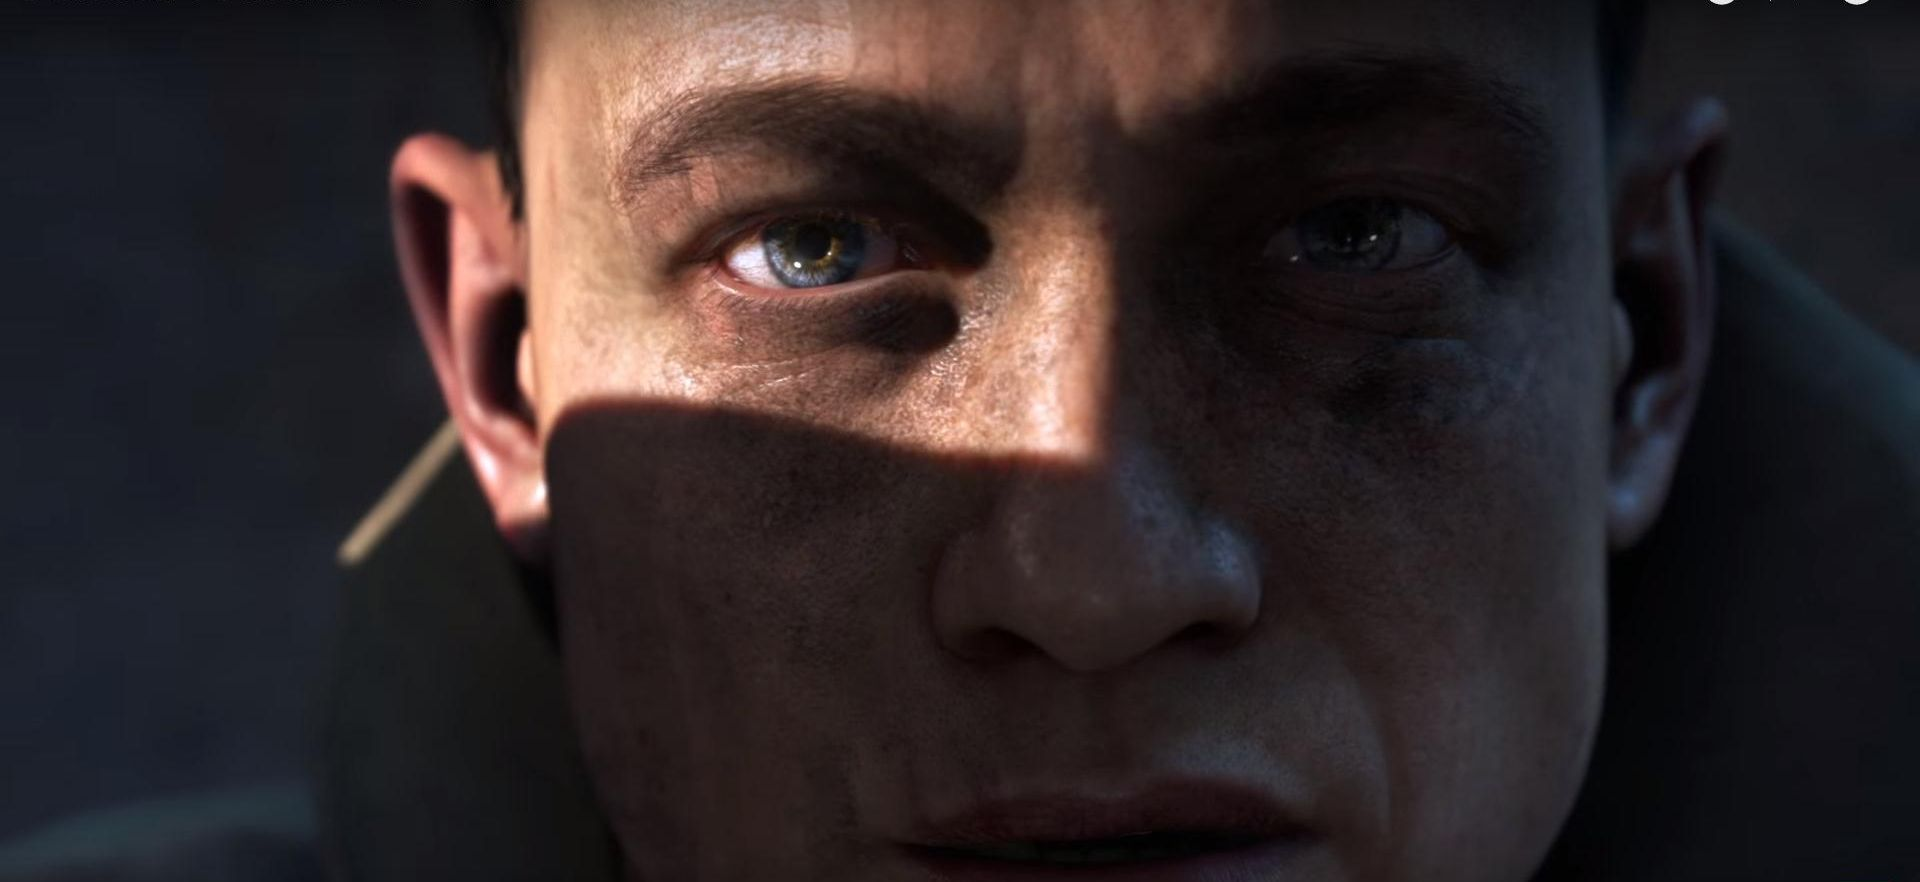 VIDEO: BATTLEFIELD 1 Gaming trailer jedan od najpopularnijih u povijesti